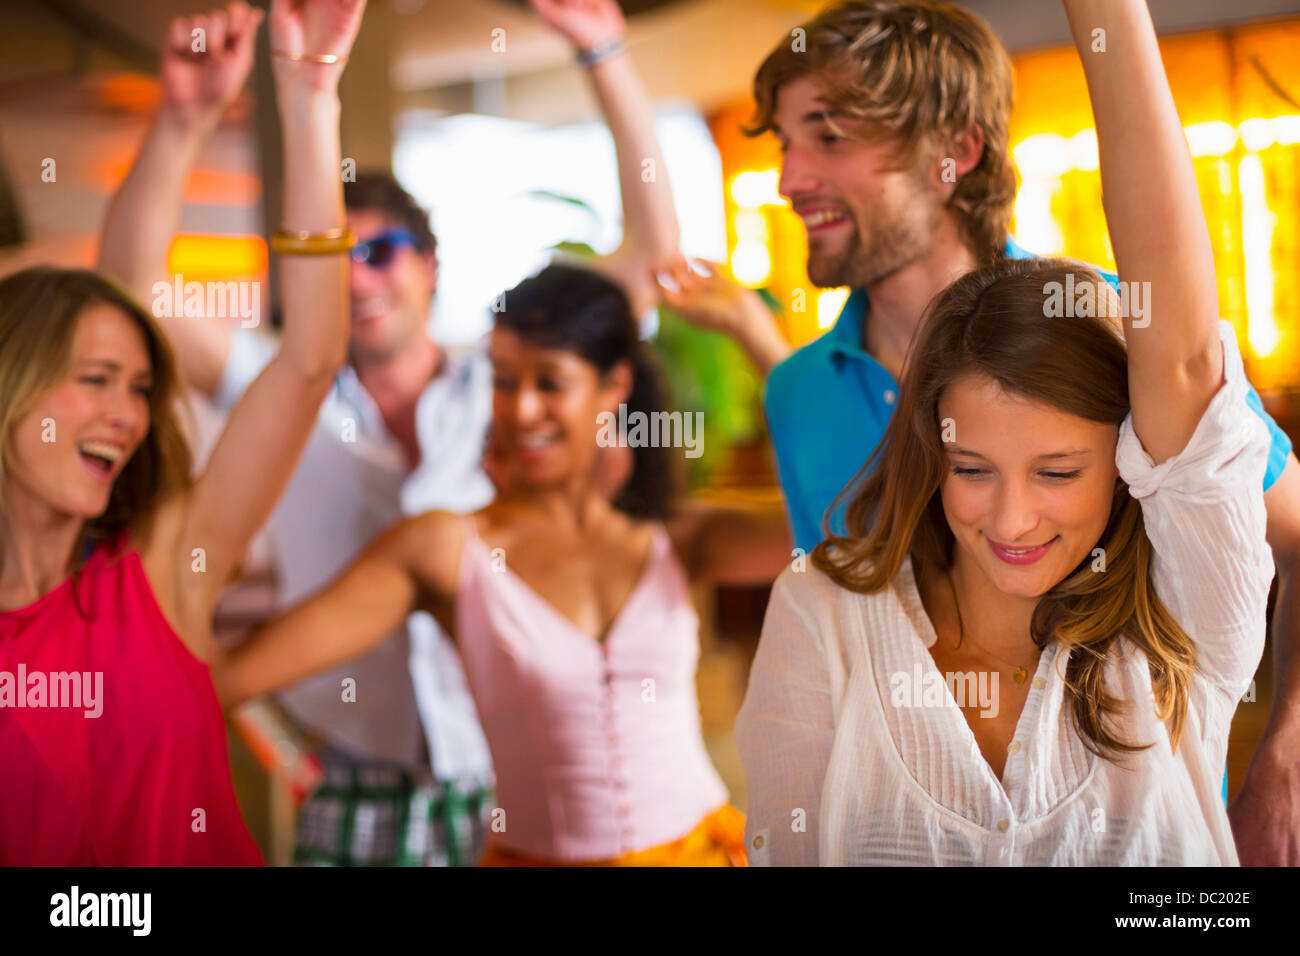 Friends dancing with arms up in bar - Stock Image